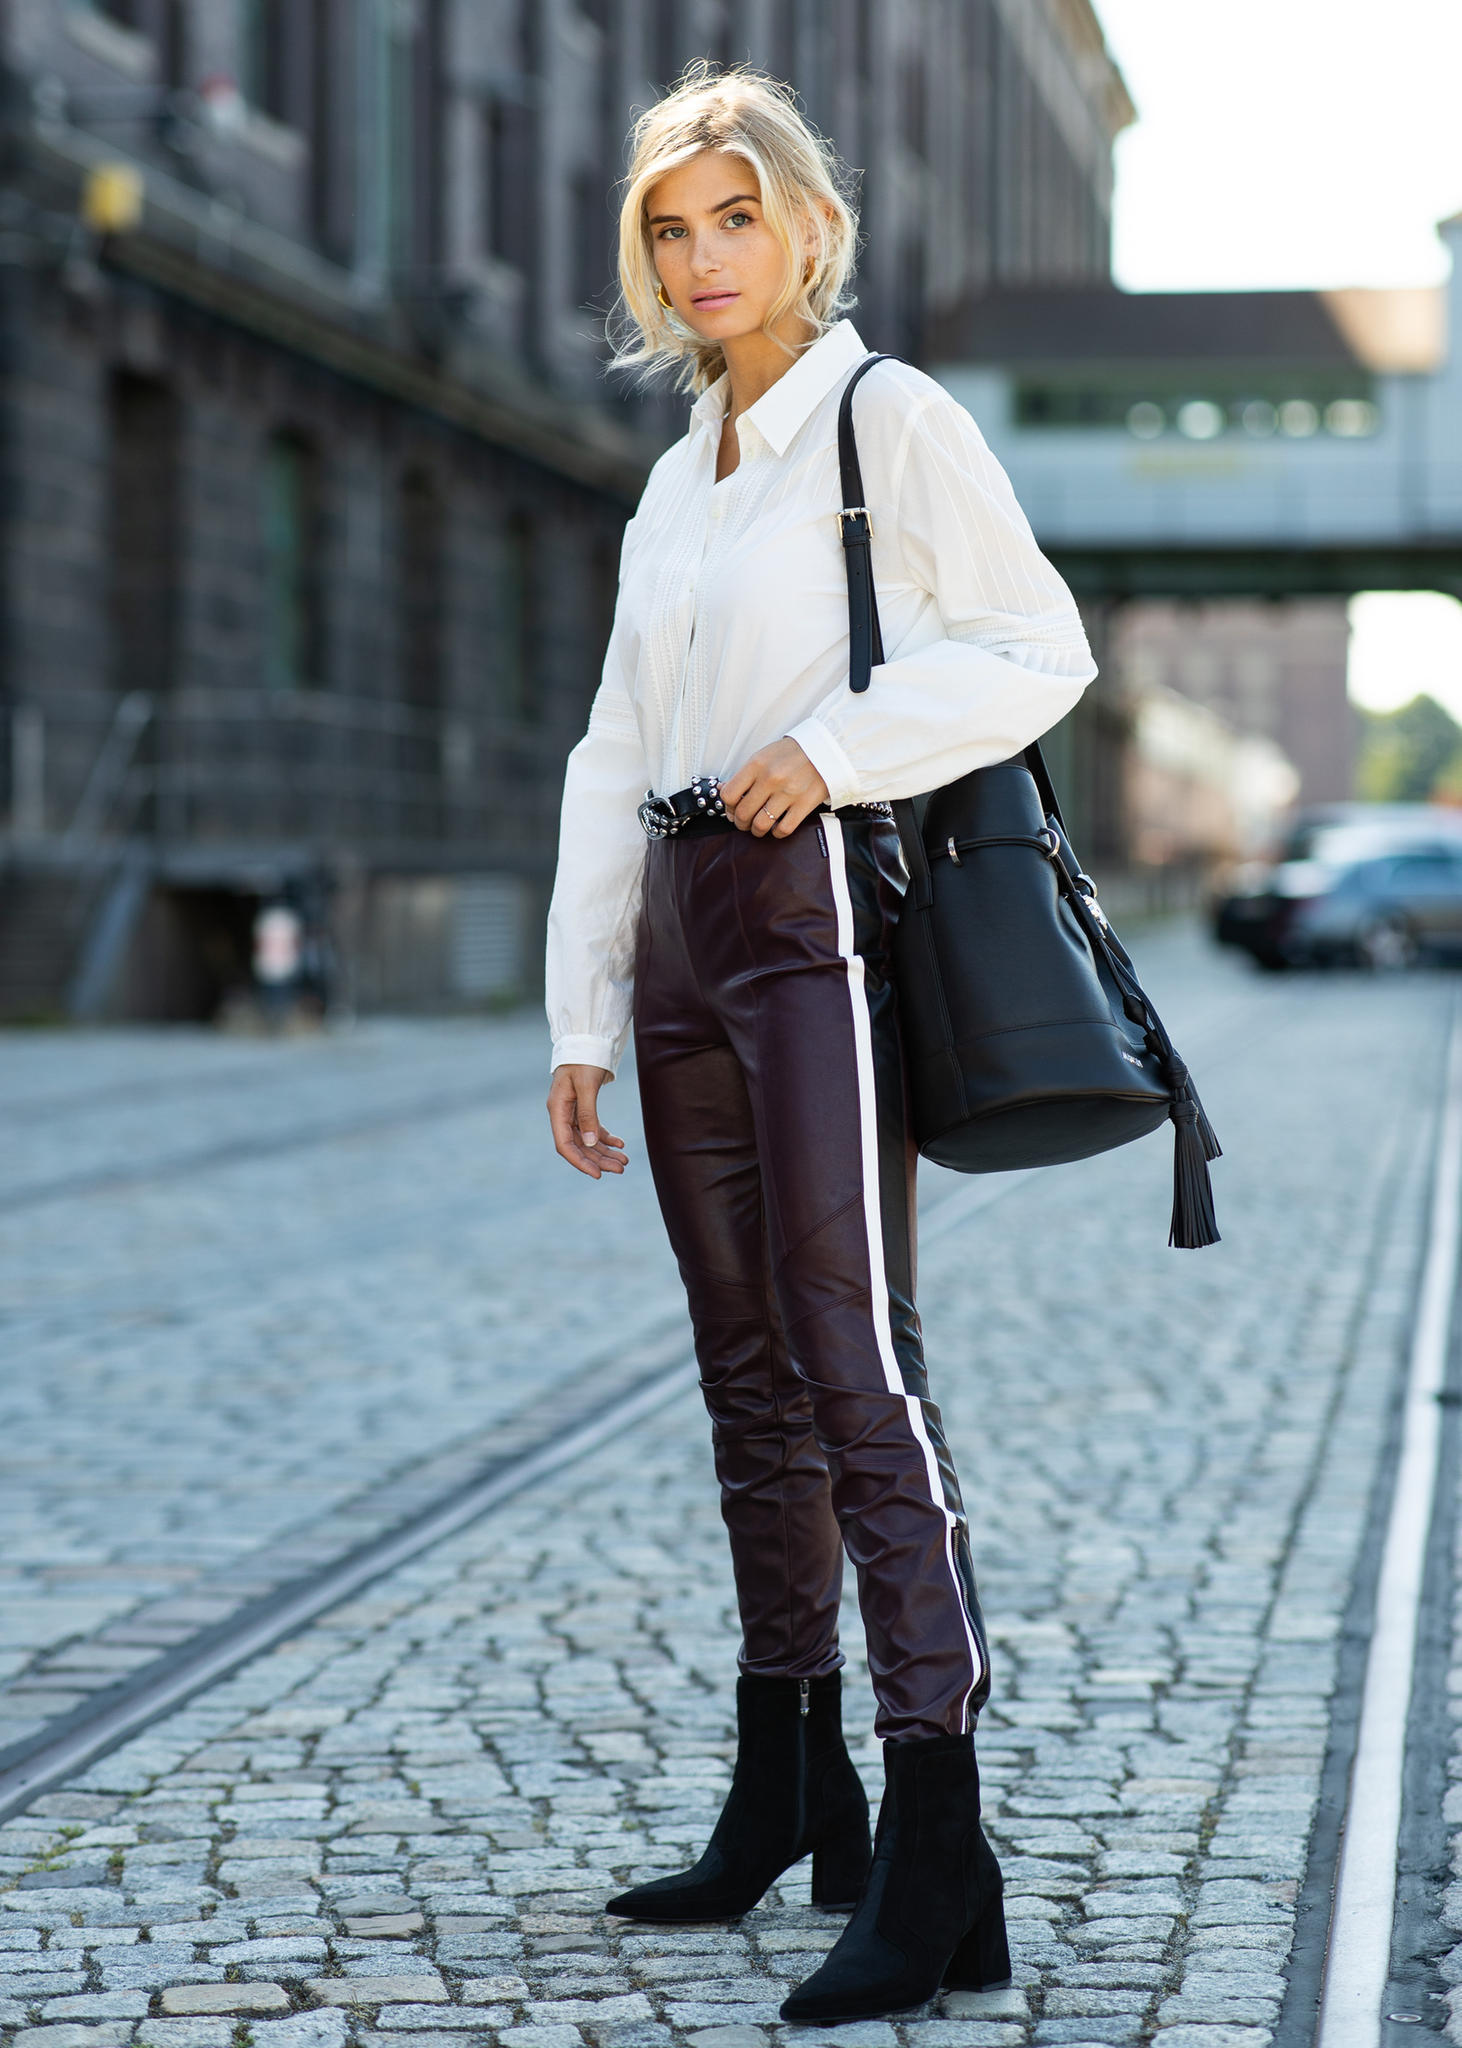 Top Ten Fashion Trends Of